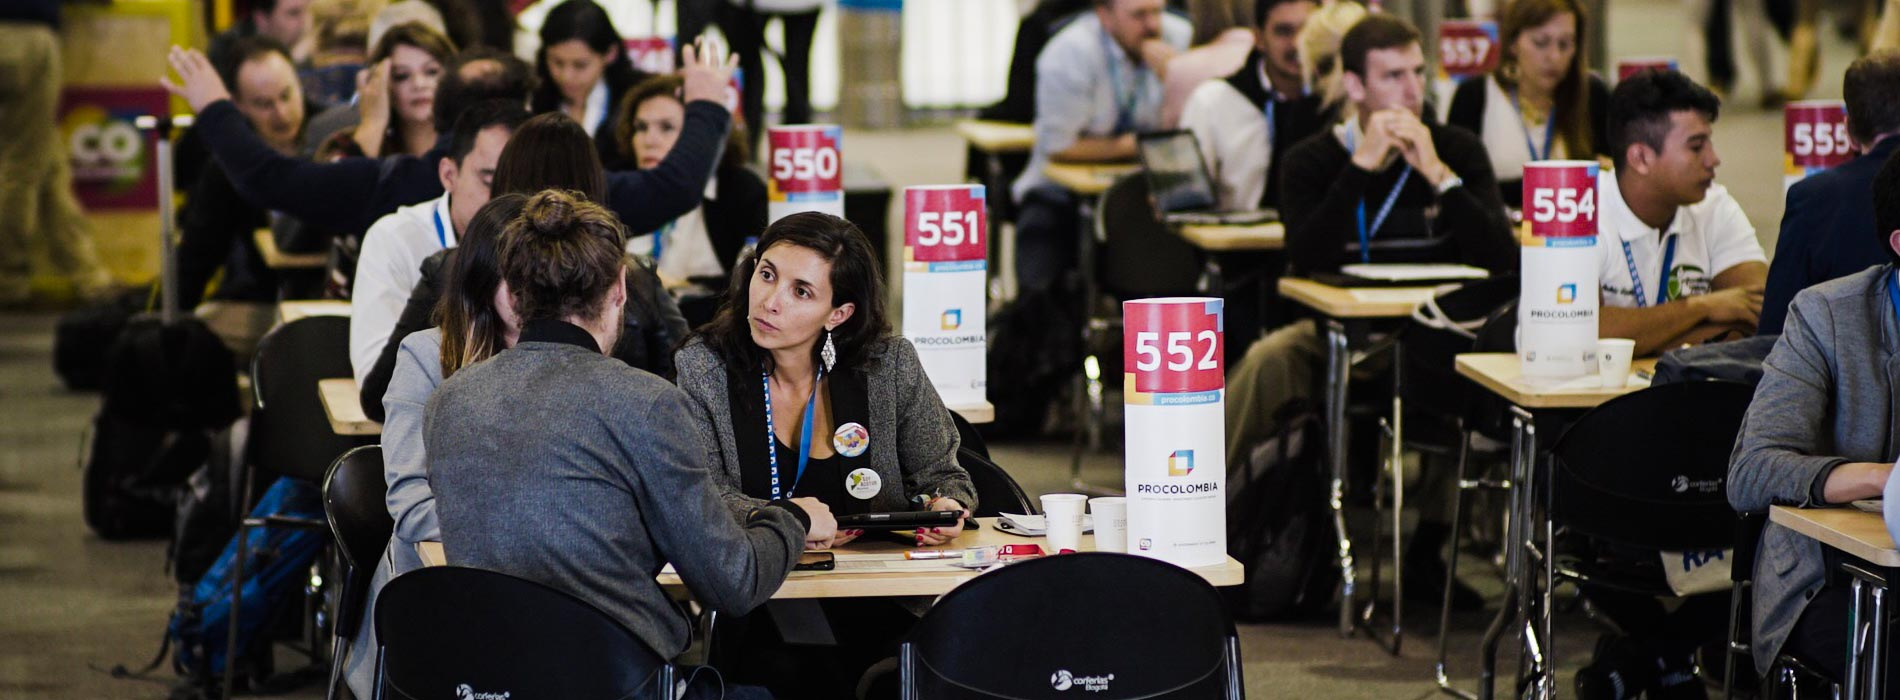 56% of buyers are at ProColombia Travel Mart for the first time